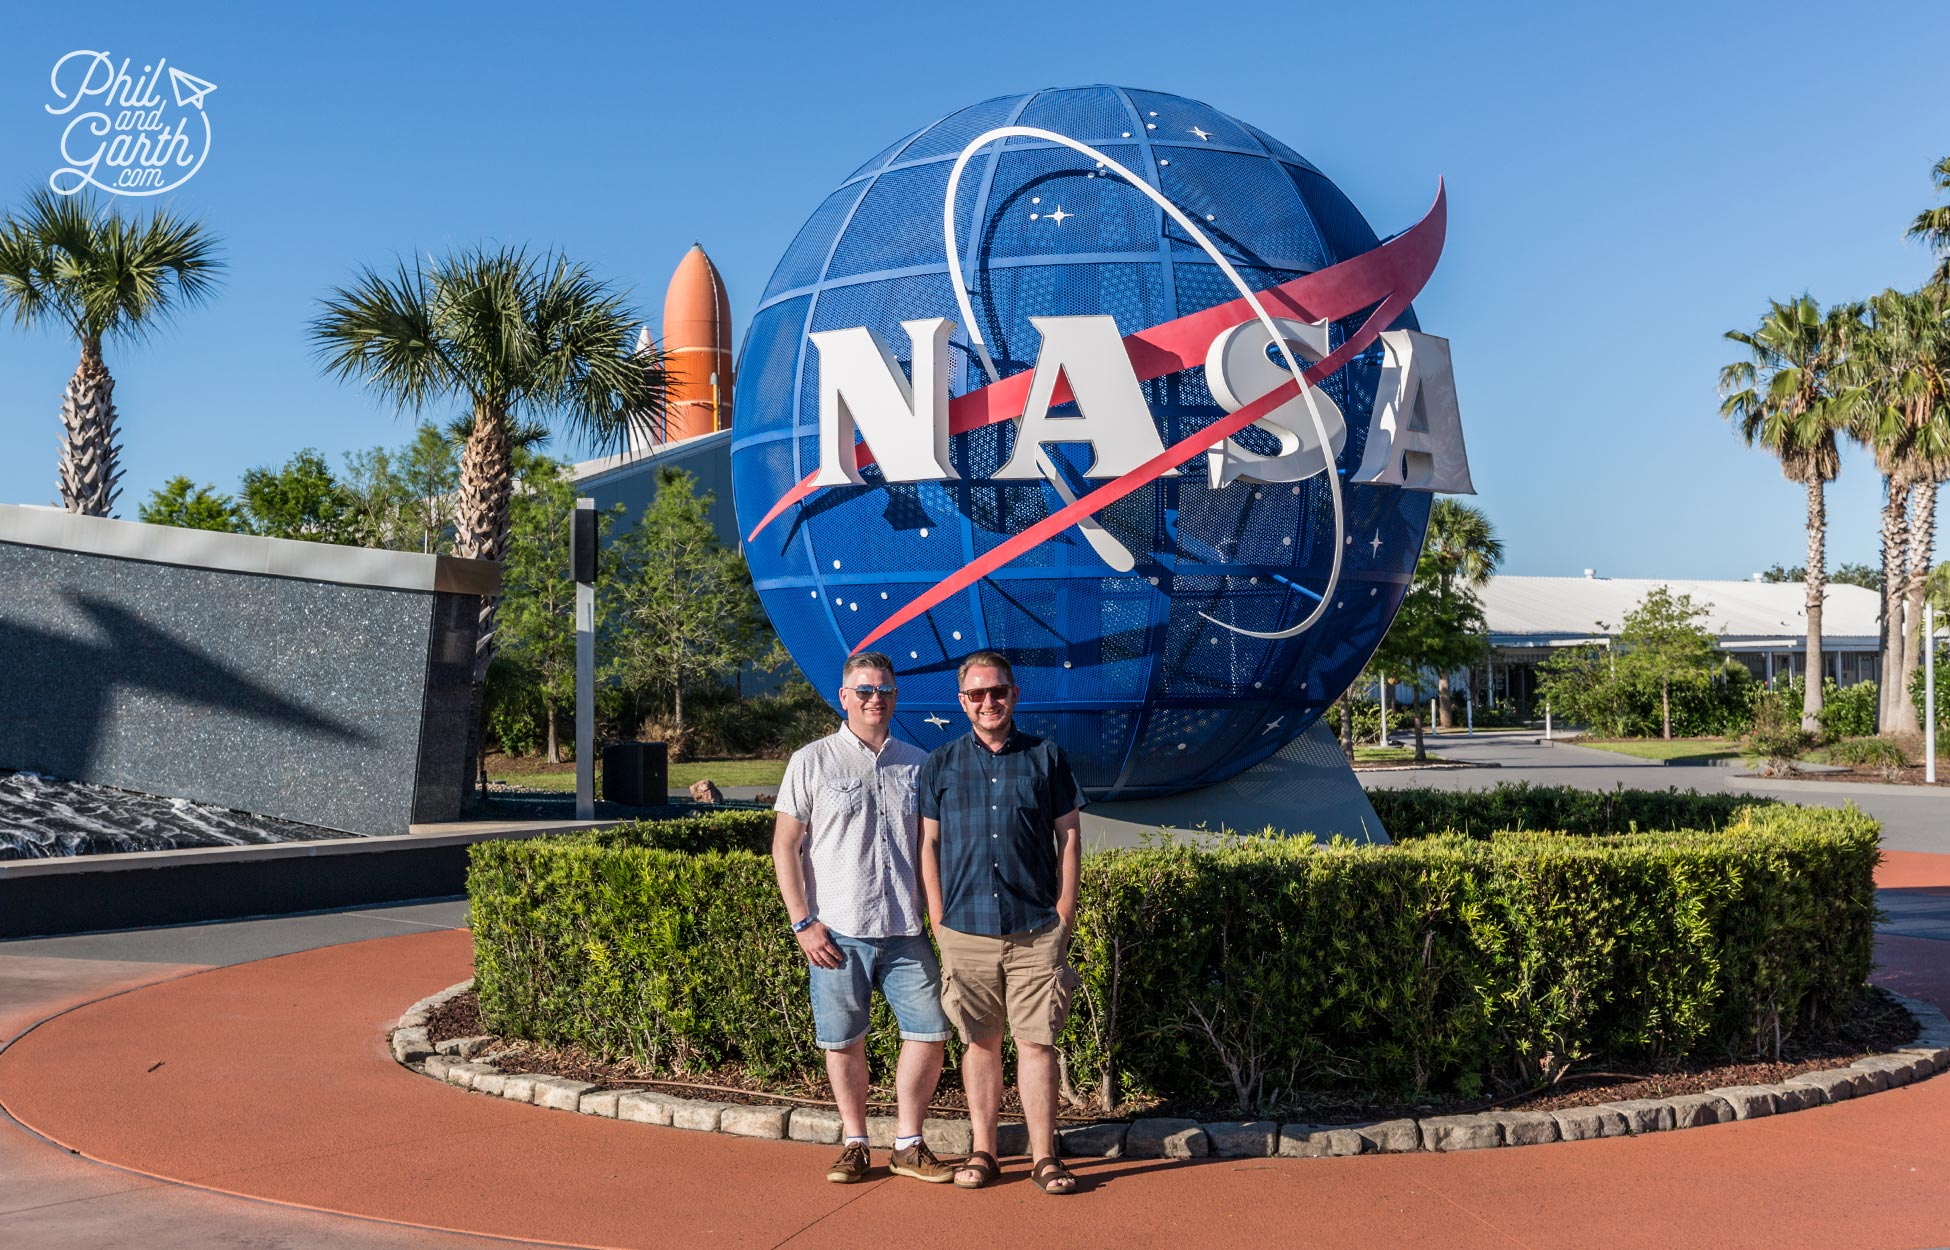 Phil and Garth at NASA's Kennedy Space Center